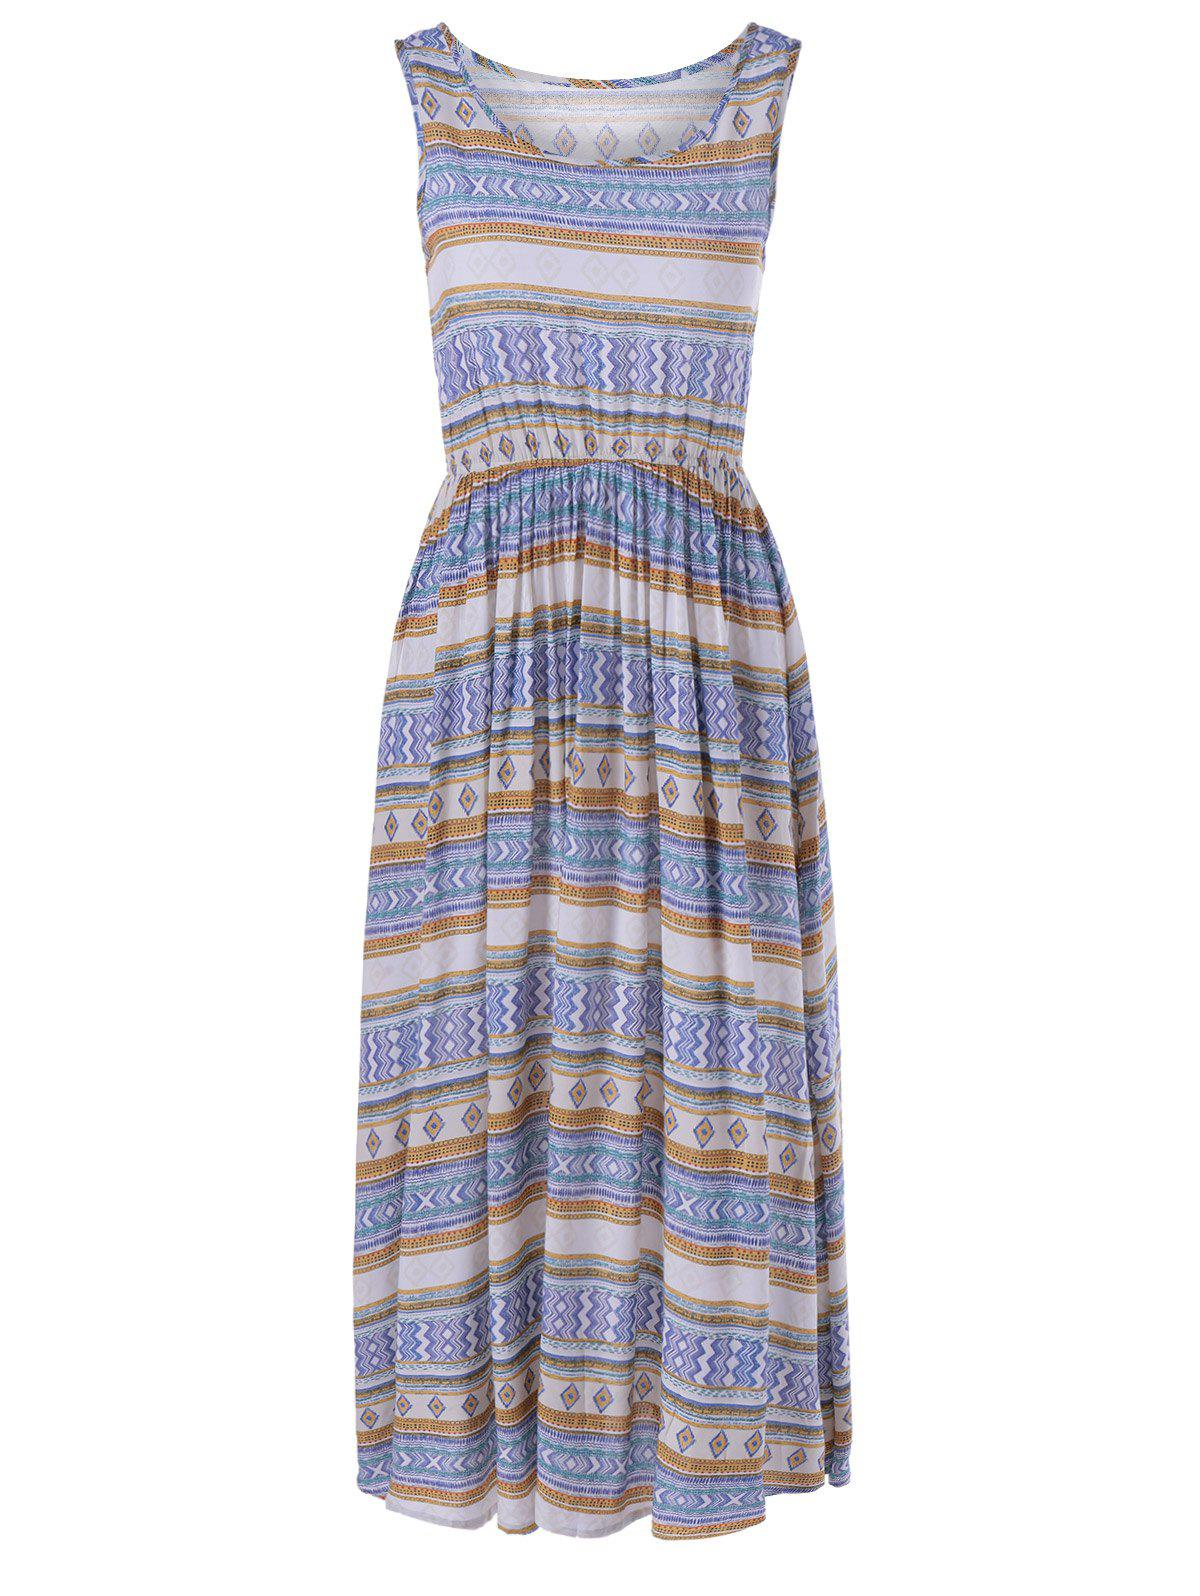 Bohemian Scoop Neck Elastic Waisted Trible Print Sleeveless Beach Dress For Women - ORANGE YELLOW ONE SIZE(FIT SIZE XS TO M)